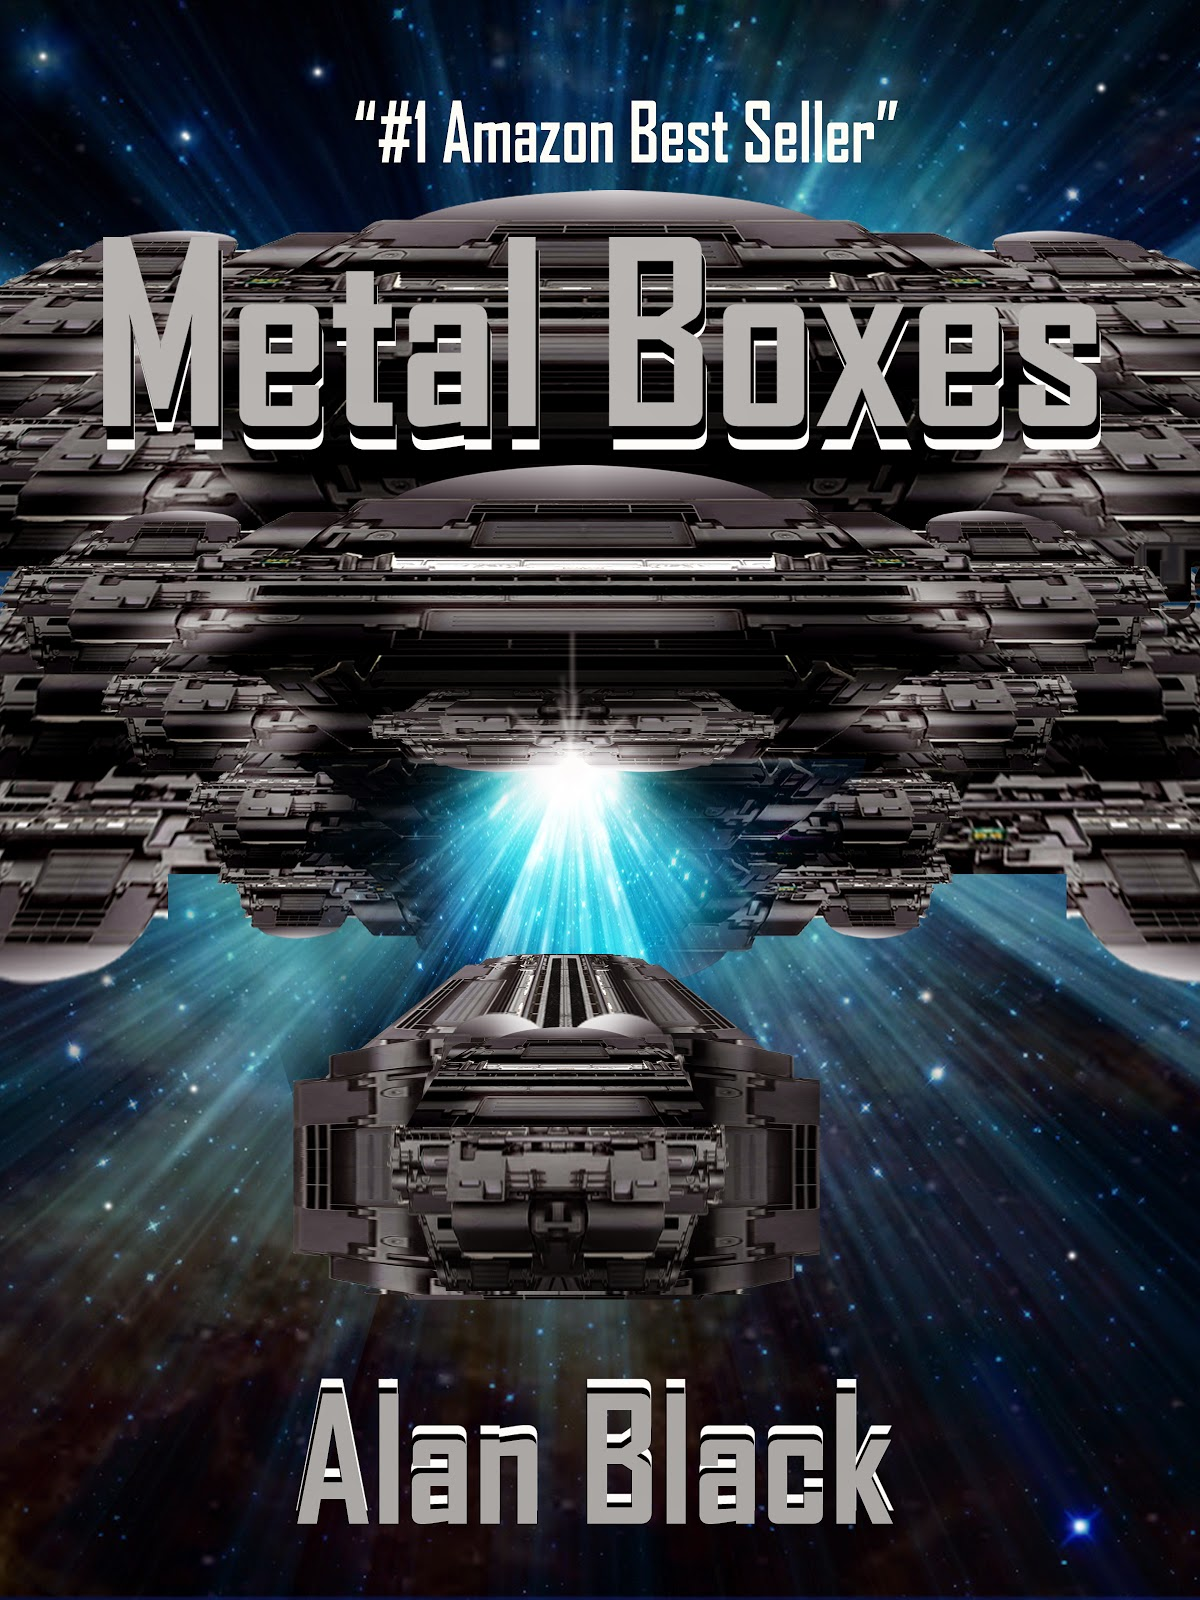 http://www.amazon.com/Metal-Boxes-Alan-Black-ebook/dp/B00FCC2VIA/ref=sr_1_1?s=digital-text&ie=UTF8&qid=1427003851&sr=1-1&keywords=metal+boxes+by+alan+black